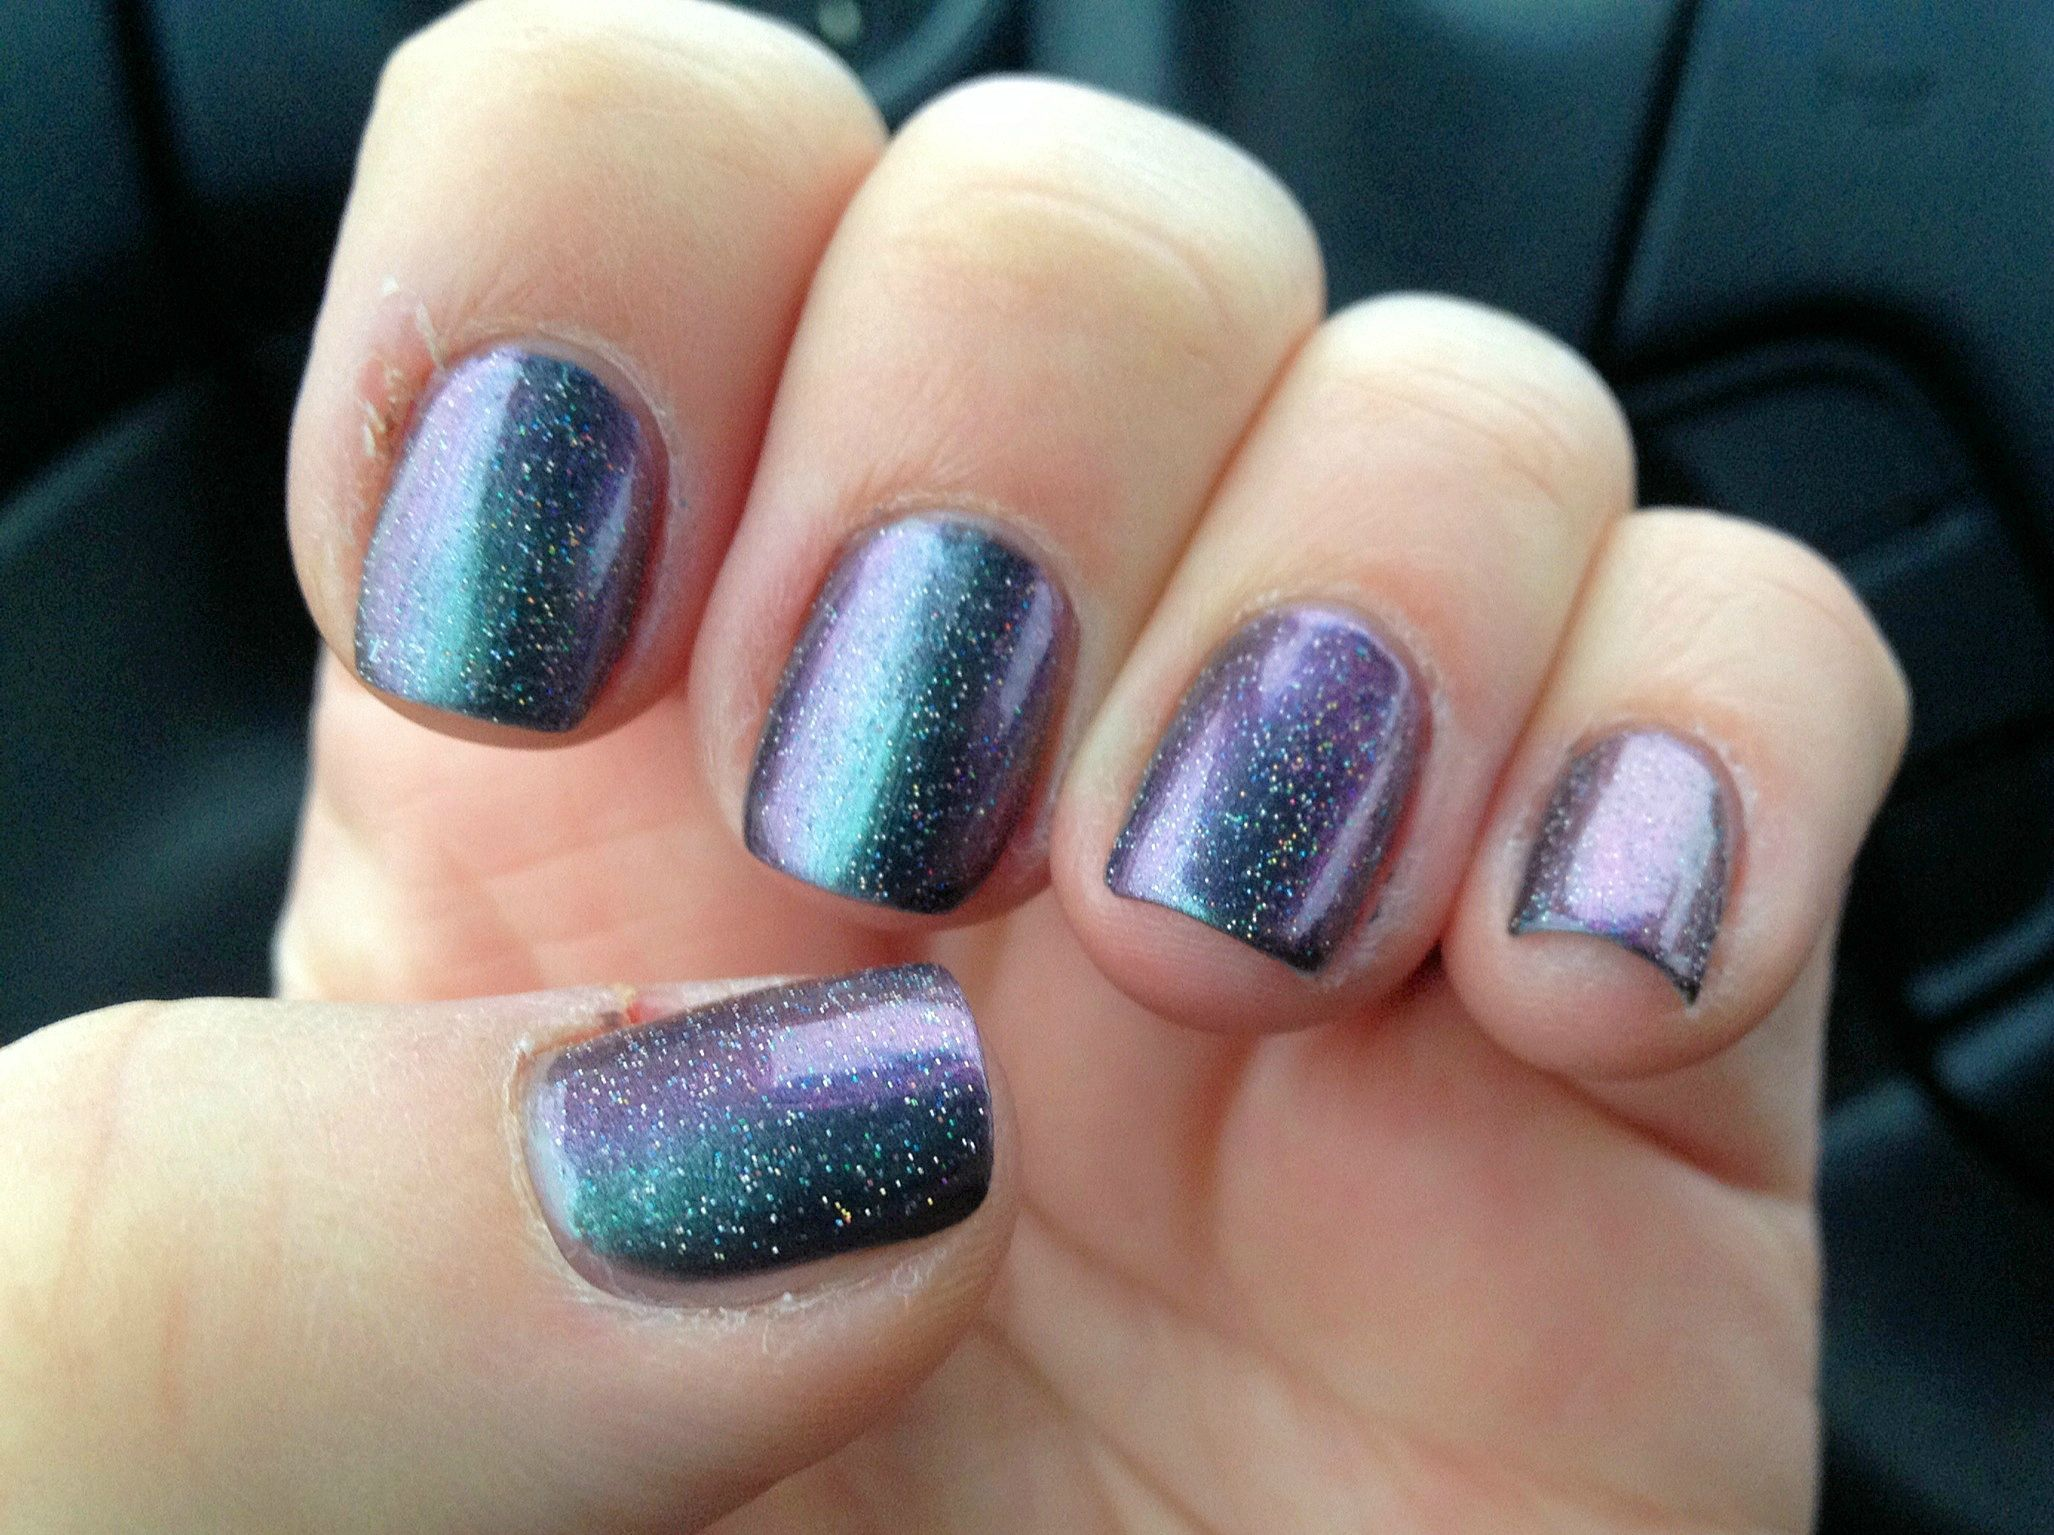 Peace, Love and OPI + Fairy Dust (China Glaze) = Out of this World ...